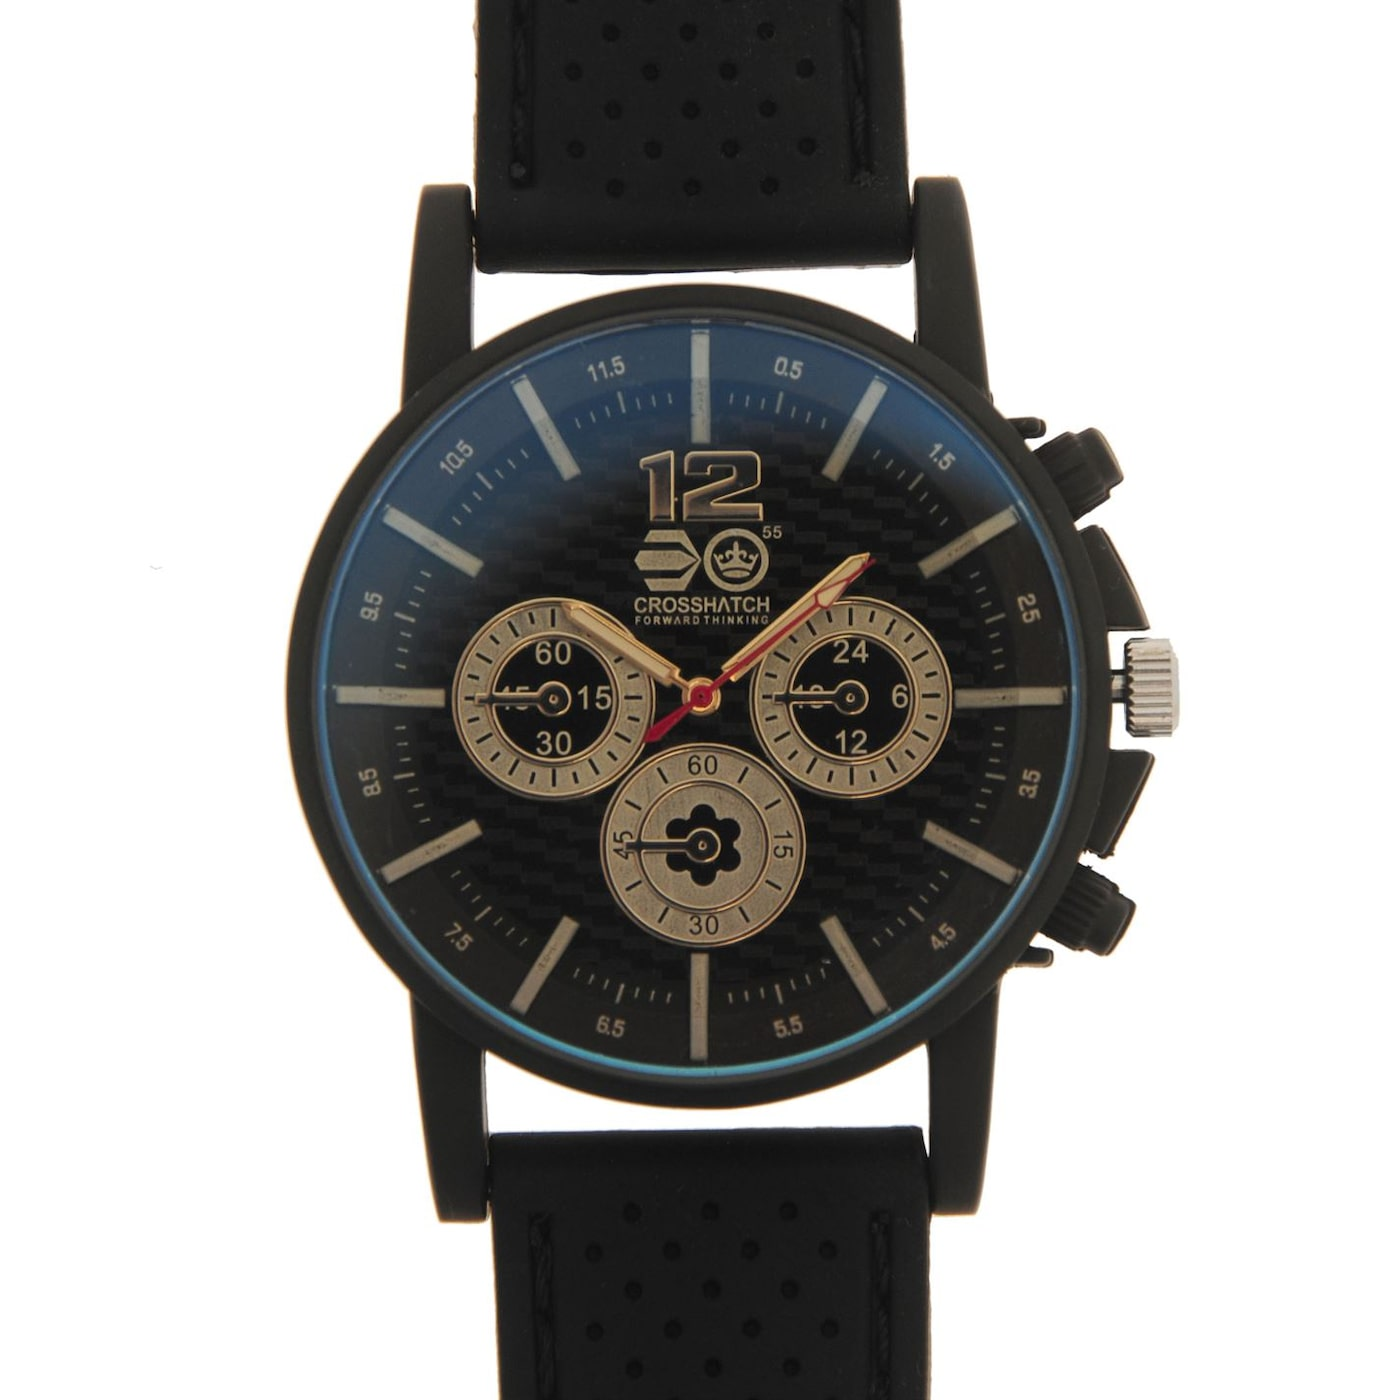 Crosshatch Chequered Rubber Strap Watch Mens